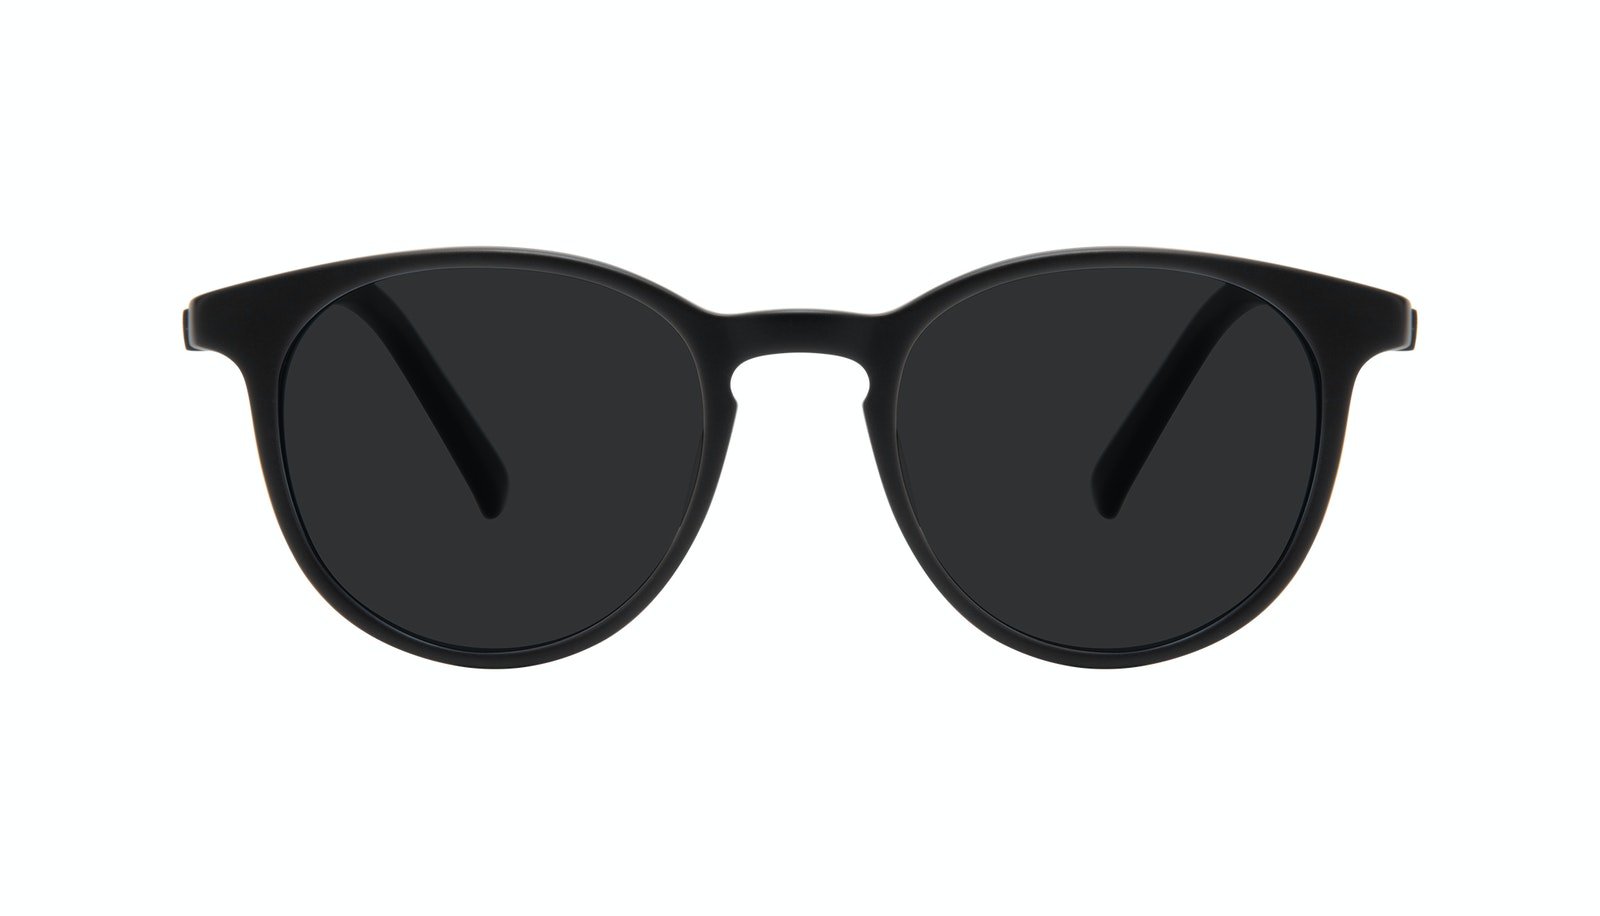 Affordable Fashion Glasses Round Sunglasses Men Select Black Matte